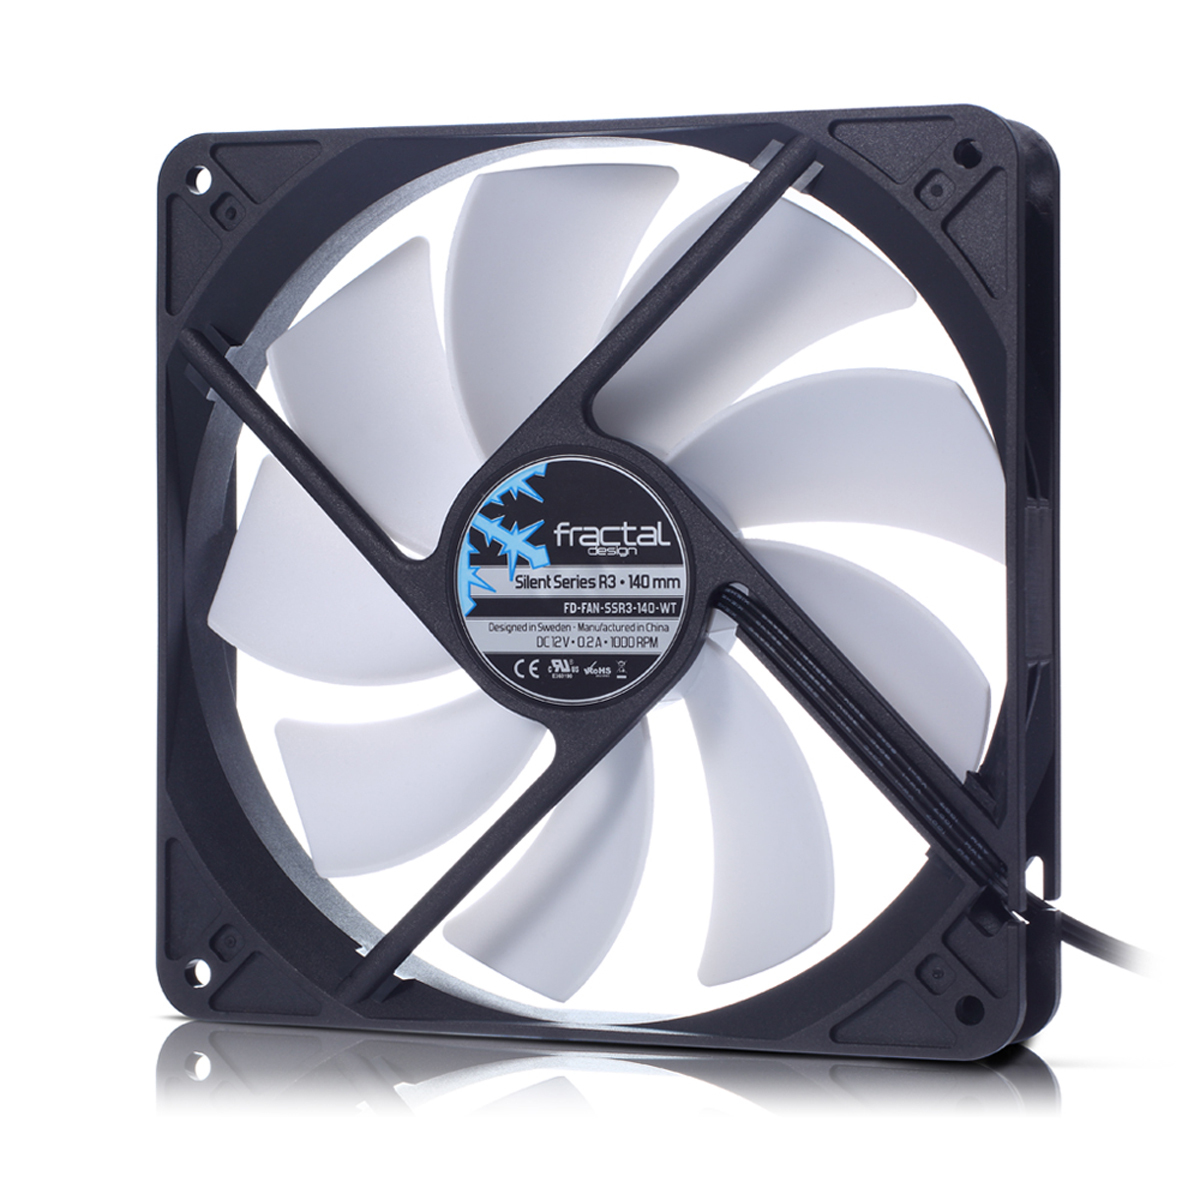 FD-FAN-SSR3-140-WT Fractal Design Silent Series R3 140mm Computer case Fan - Ent01